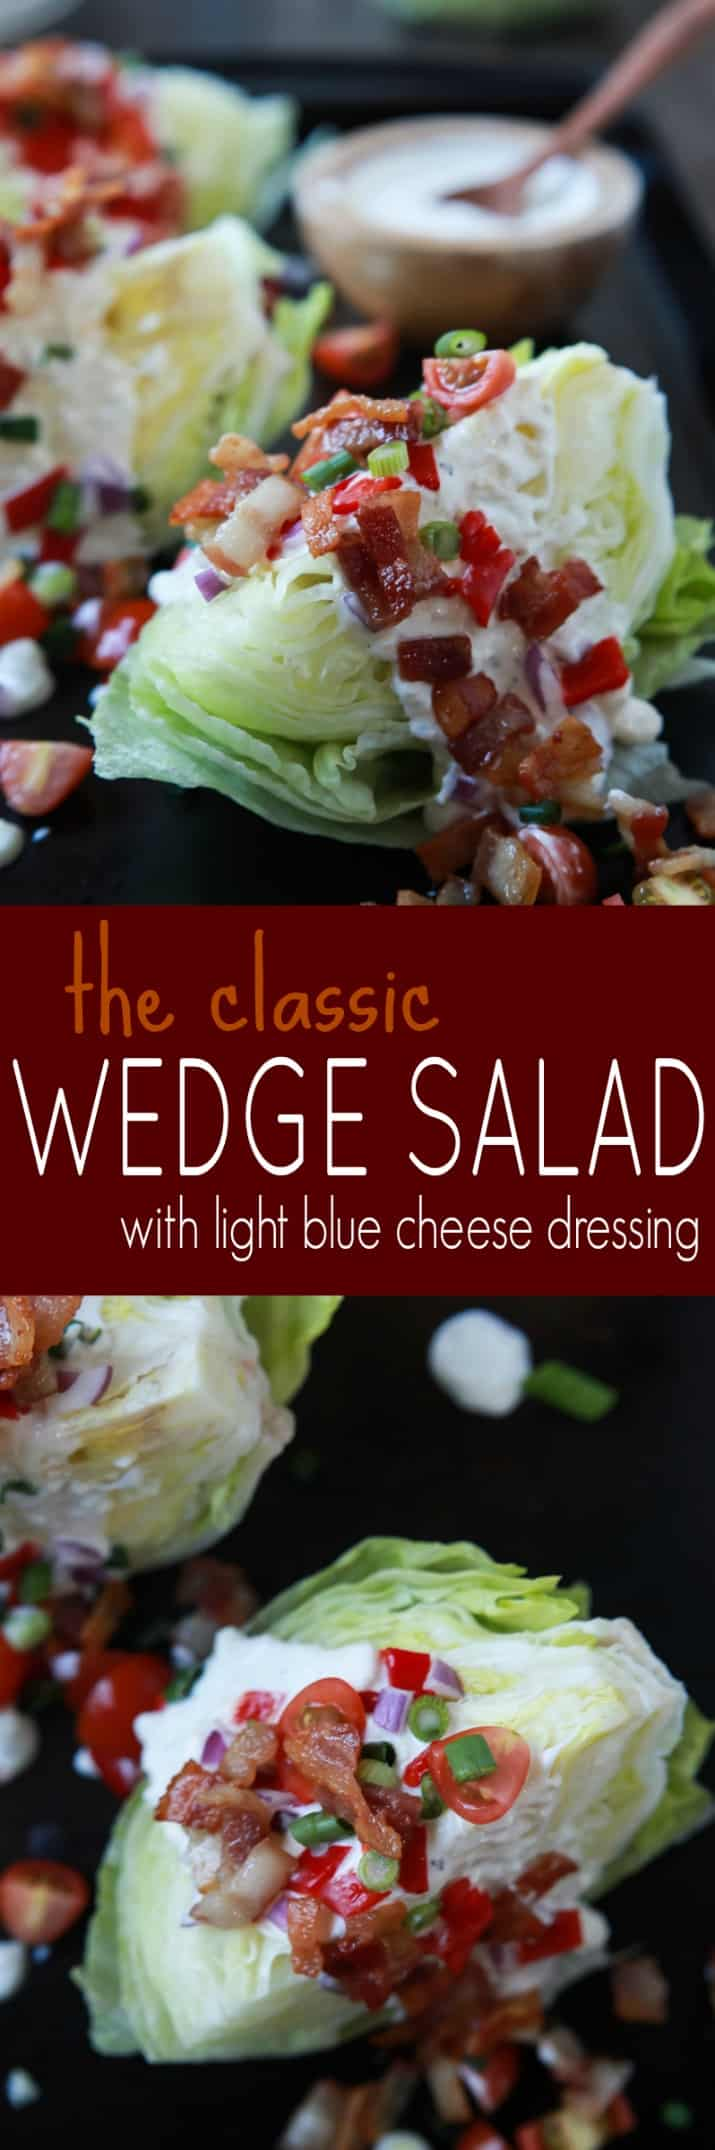 Simple Classic Wedge Salad with a Light Blue Cheese Dressing - a easy refreshing salad loaded with flavor from crispy Bacon to tangy Blue Cheese! Definitely a crowd pleaser and only 179 calories! | joyfulhealthyeats.com #glutenfree